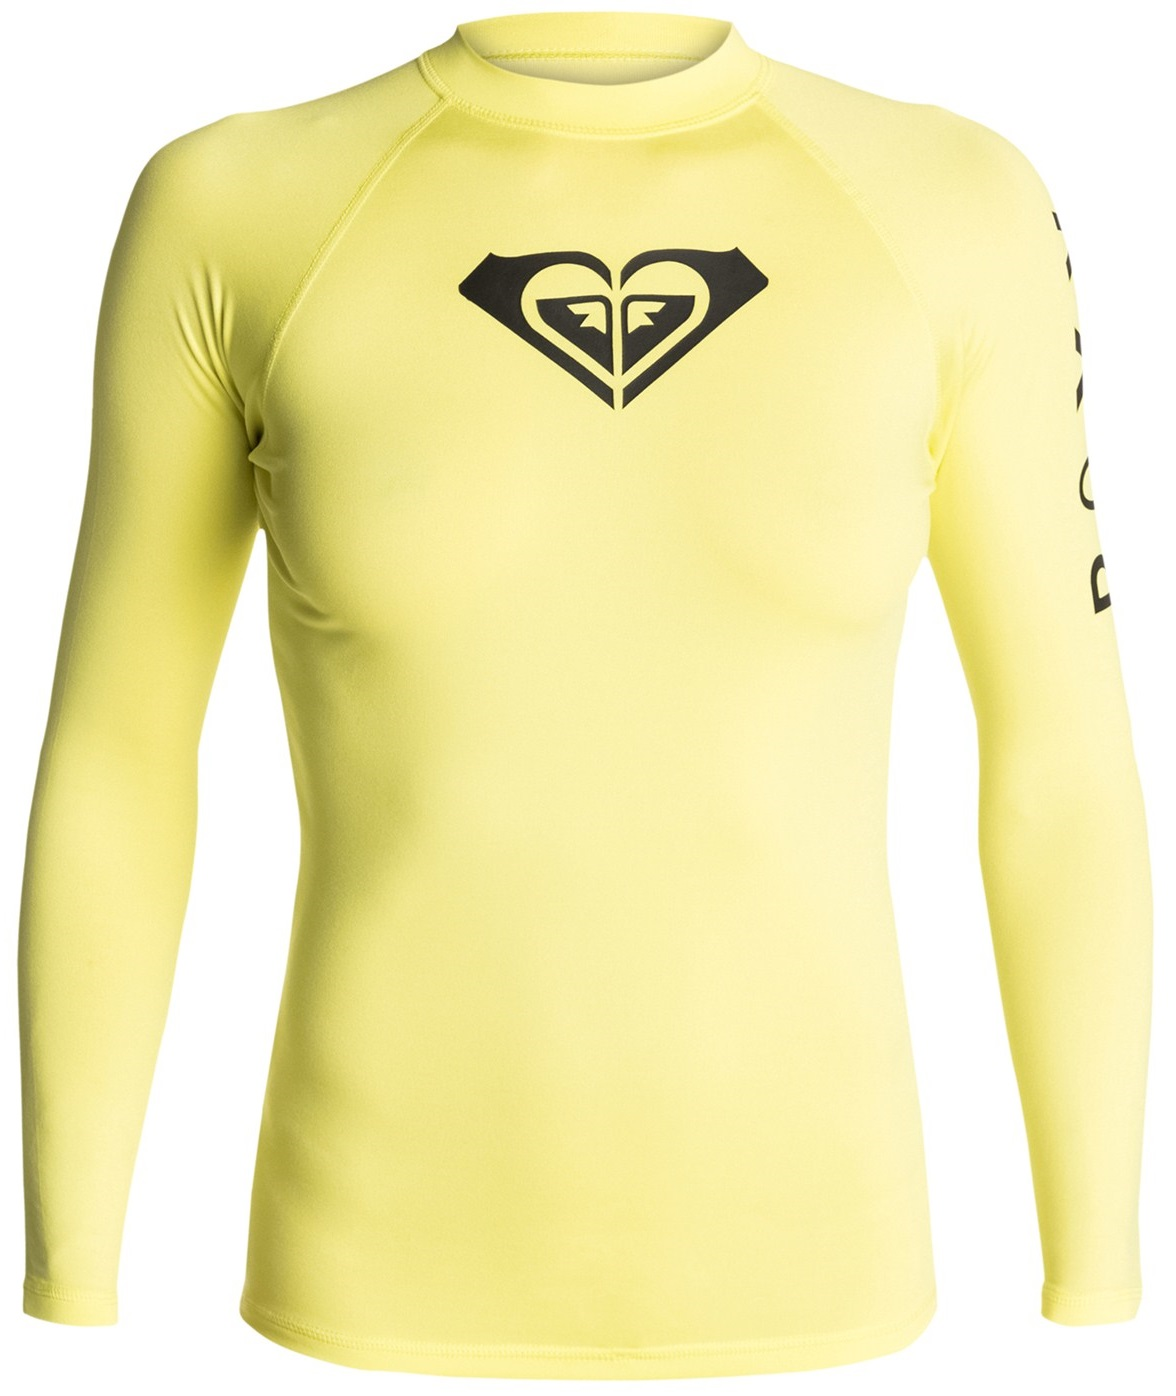 Roxy Whole Hearted Rashguard Long Sleeve Women's - Lemon Yellow